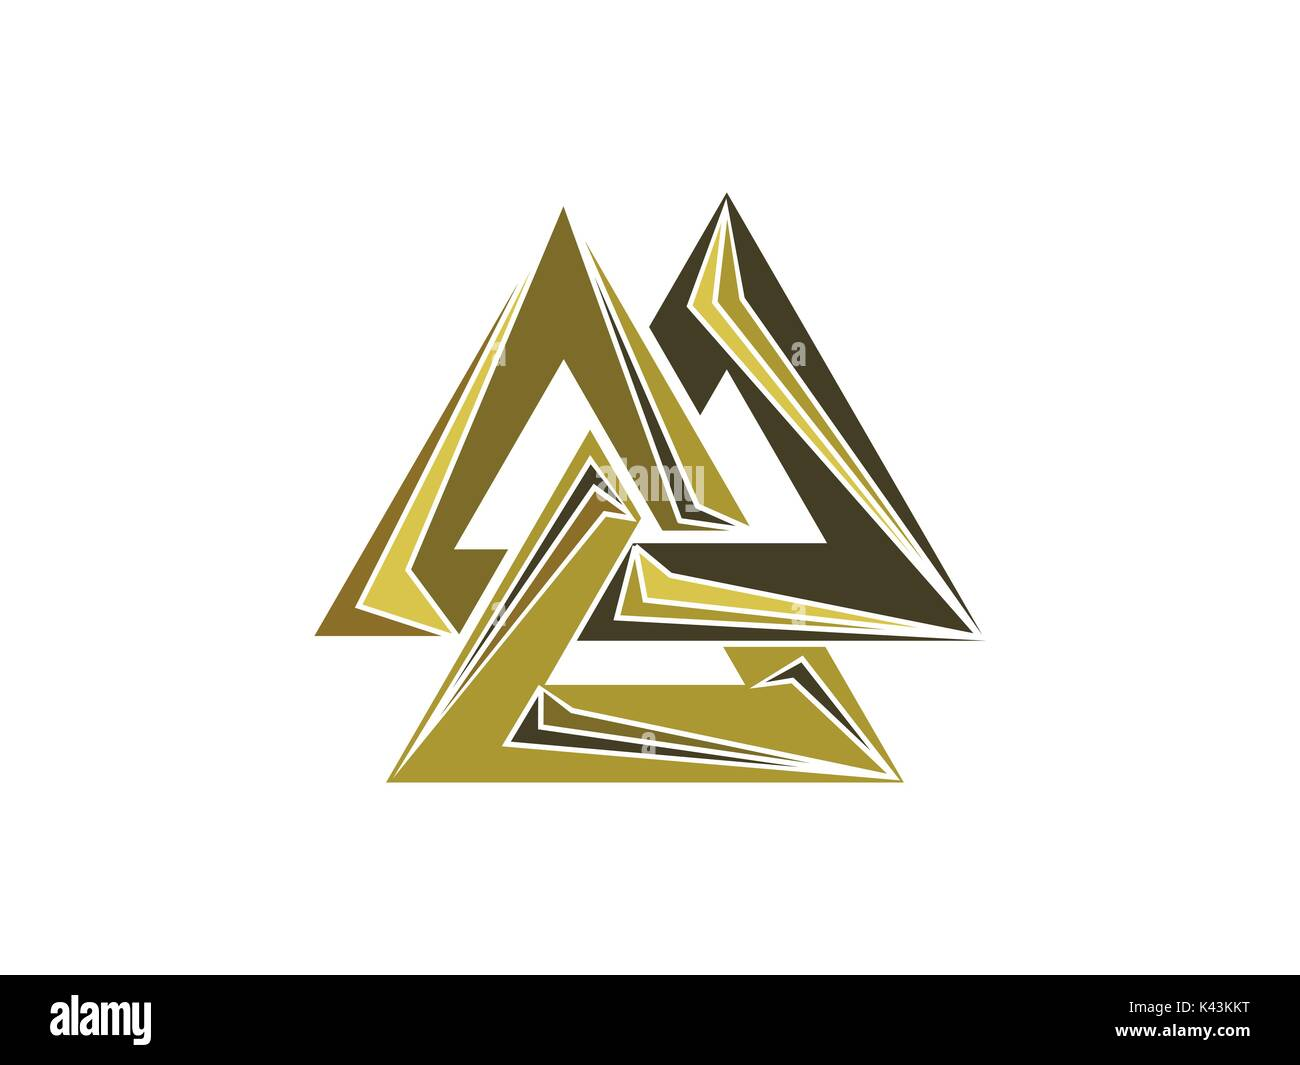 Valknut is a symbol of the world's end of the tree Yggdrasil. Sign of the god Odin. Norse culture. Triangle logo. Vector illustration - Stock Vector